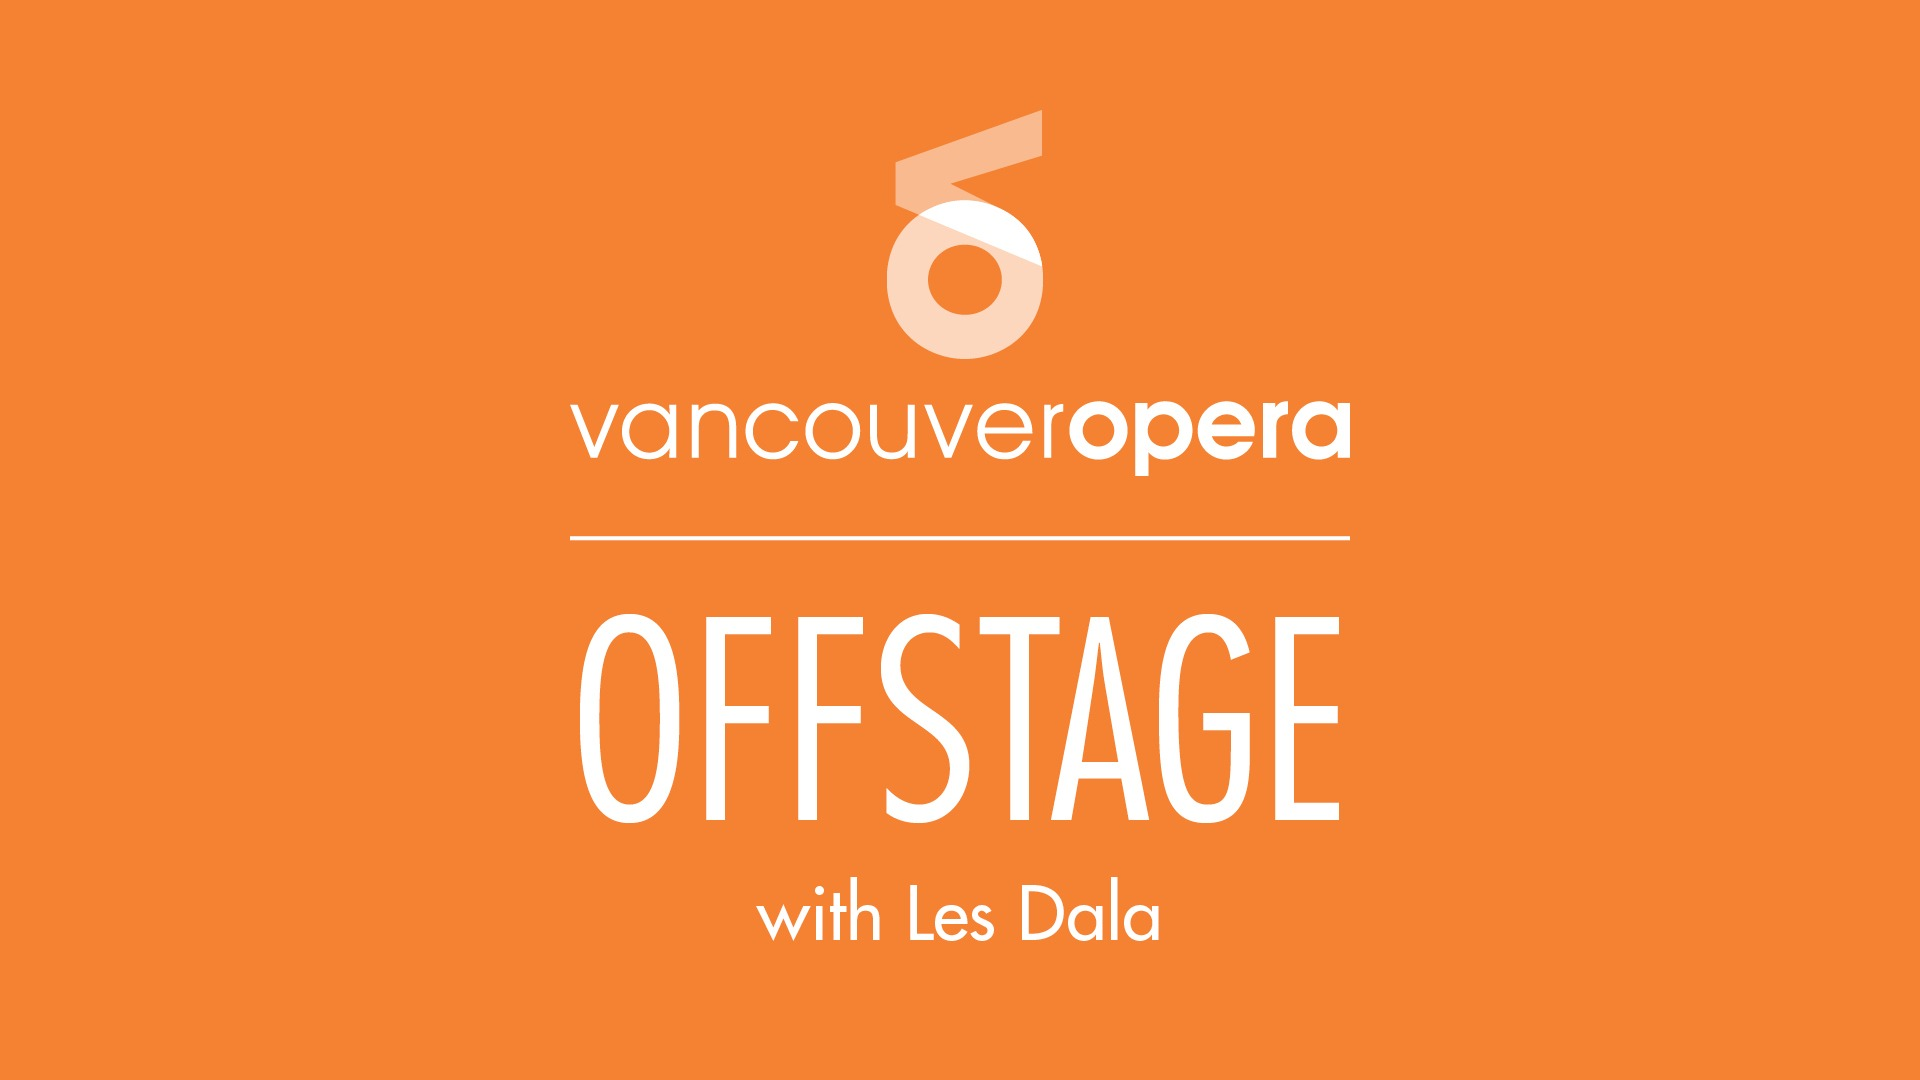 Vancouver Opera Offstage, a weekly podcast hosted by Les Dala